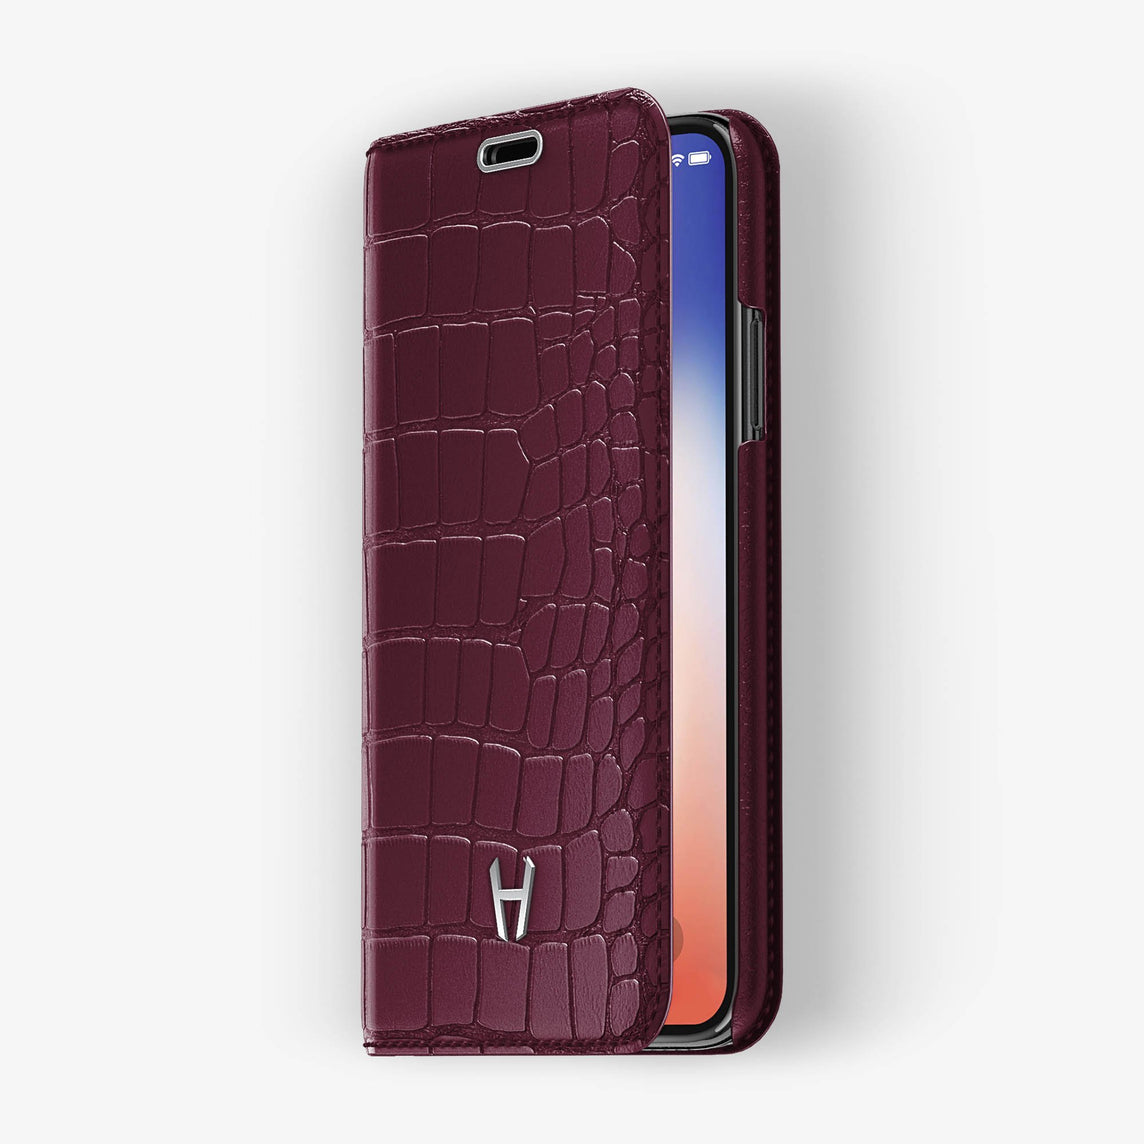 Burgundy Alligator iPhone Folio Case for iPhone X finishing stainless steel - Hadoro Luxury Cases